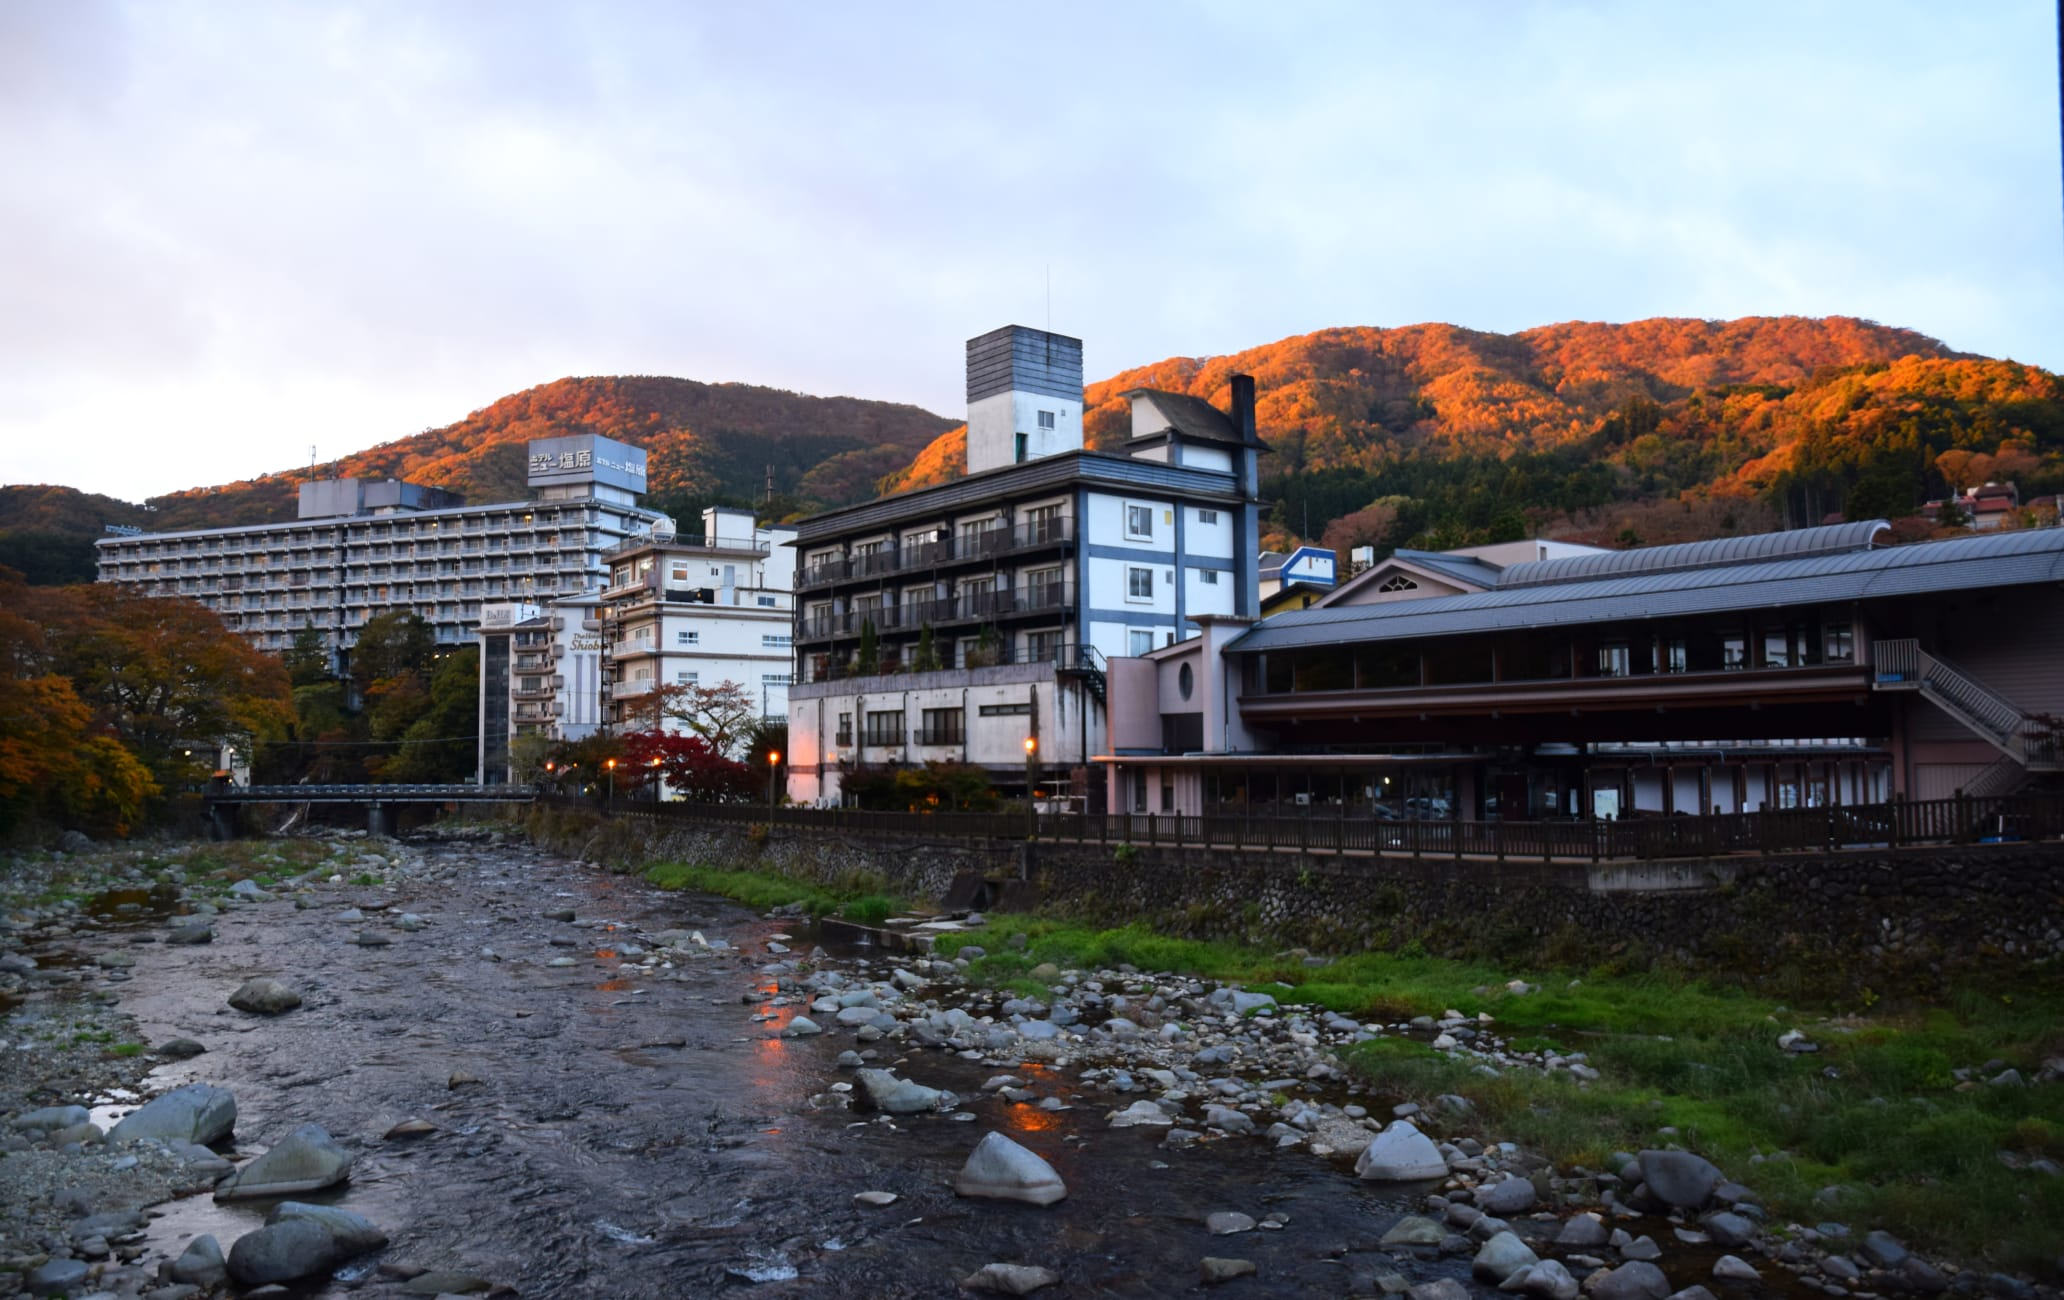 Shiobara Hot Springs Village